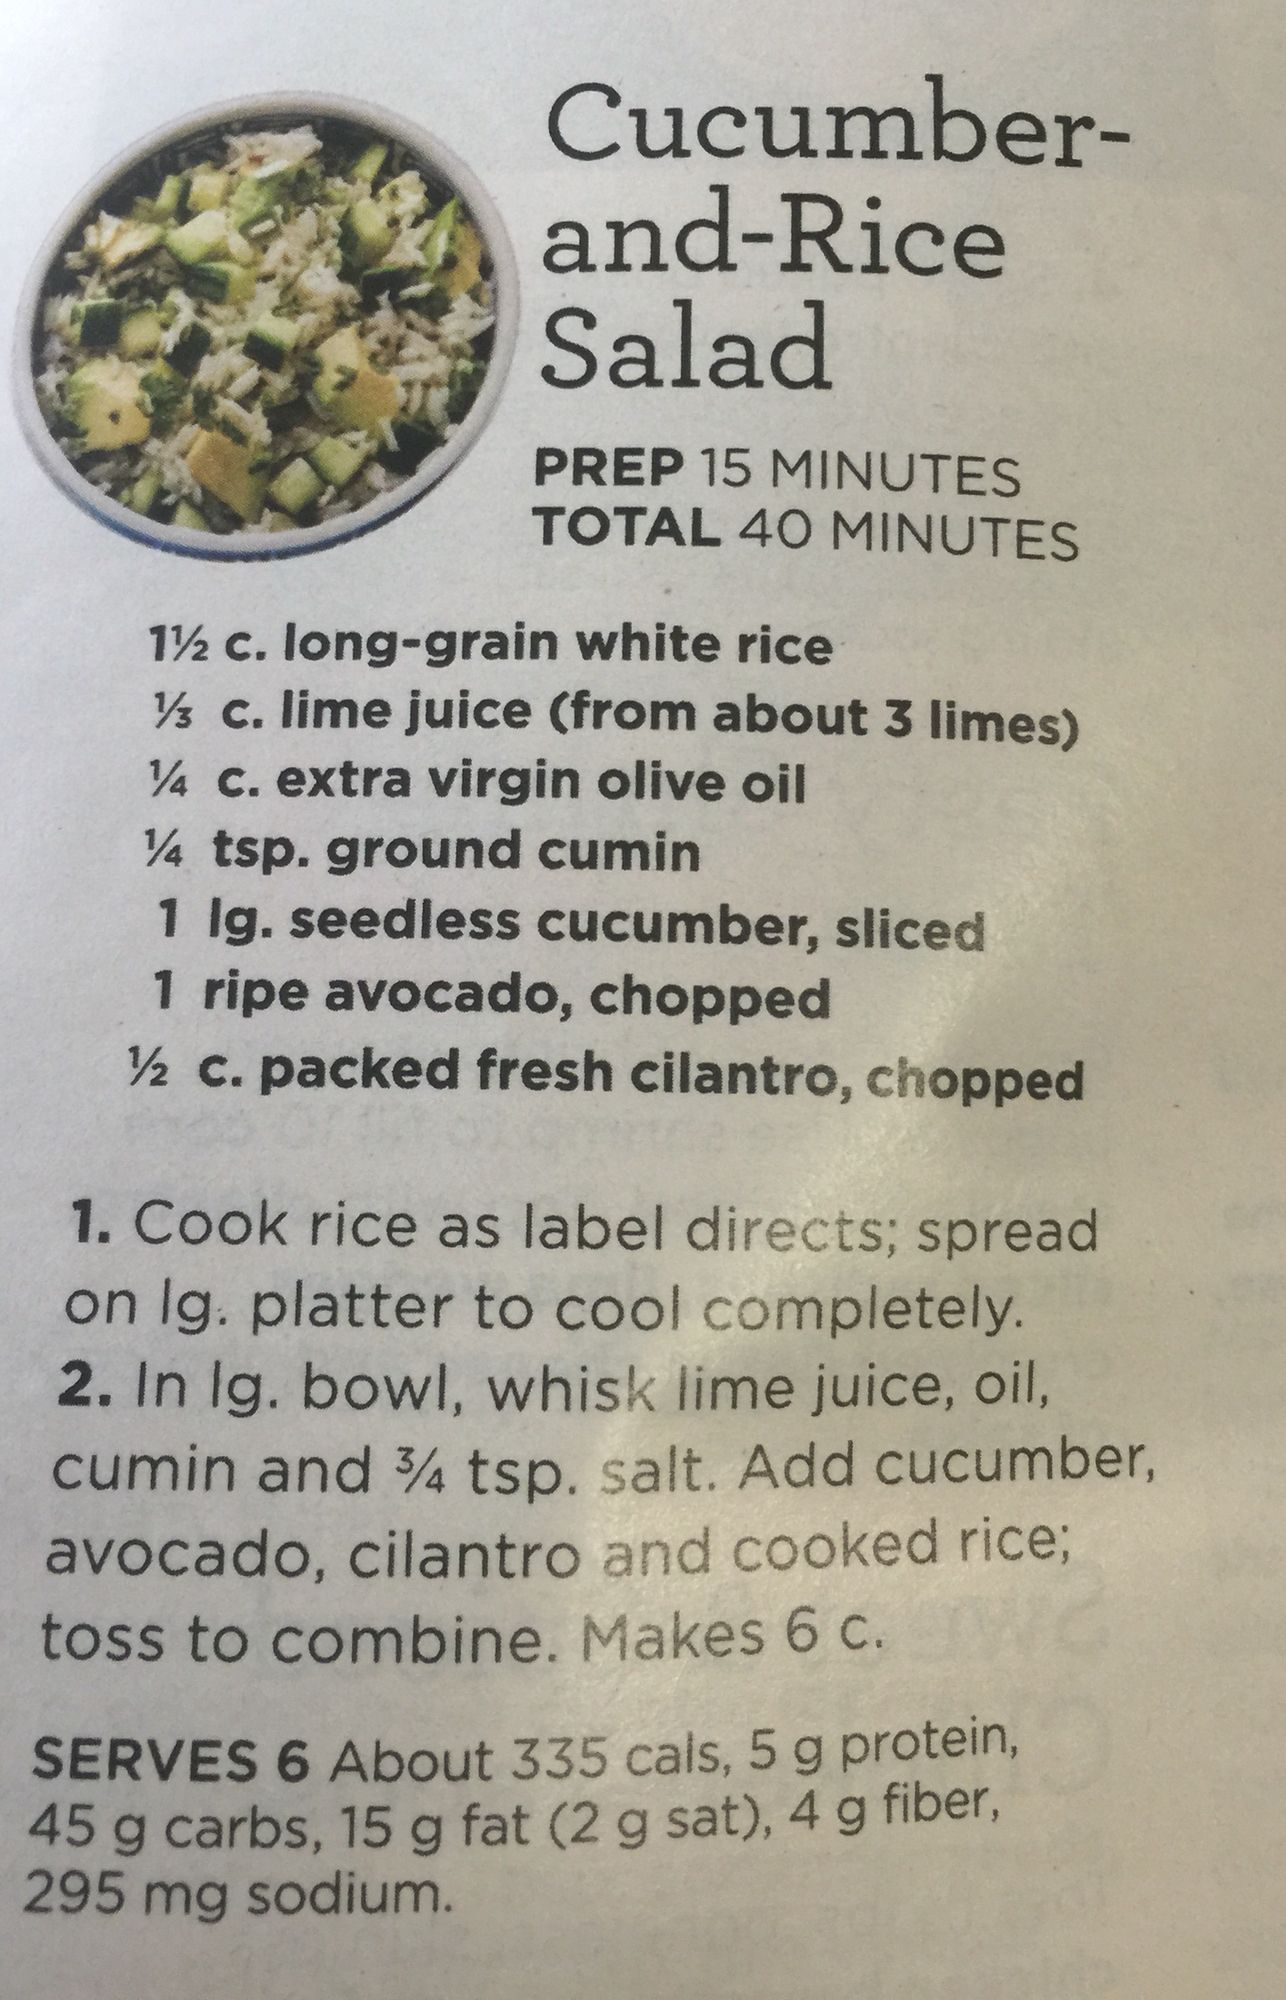 Cucumber And Rice Salad From Good Housekeeping Rice Salad Healthy Food Options Recipes